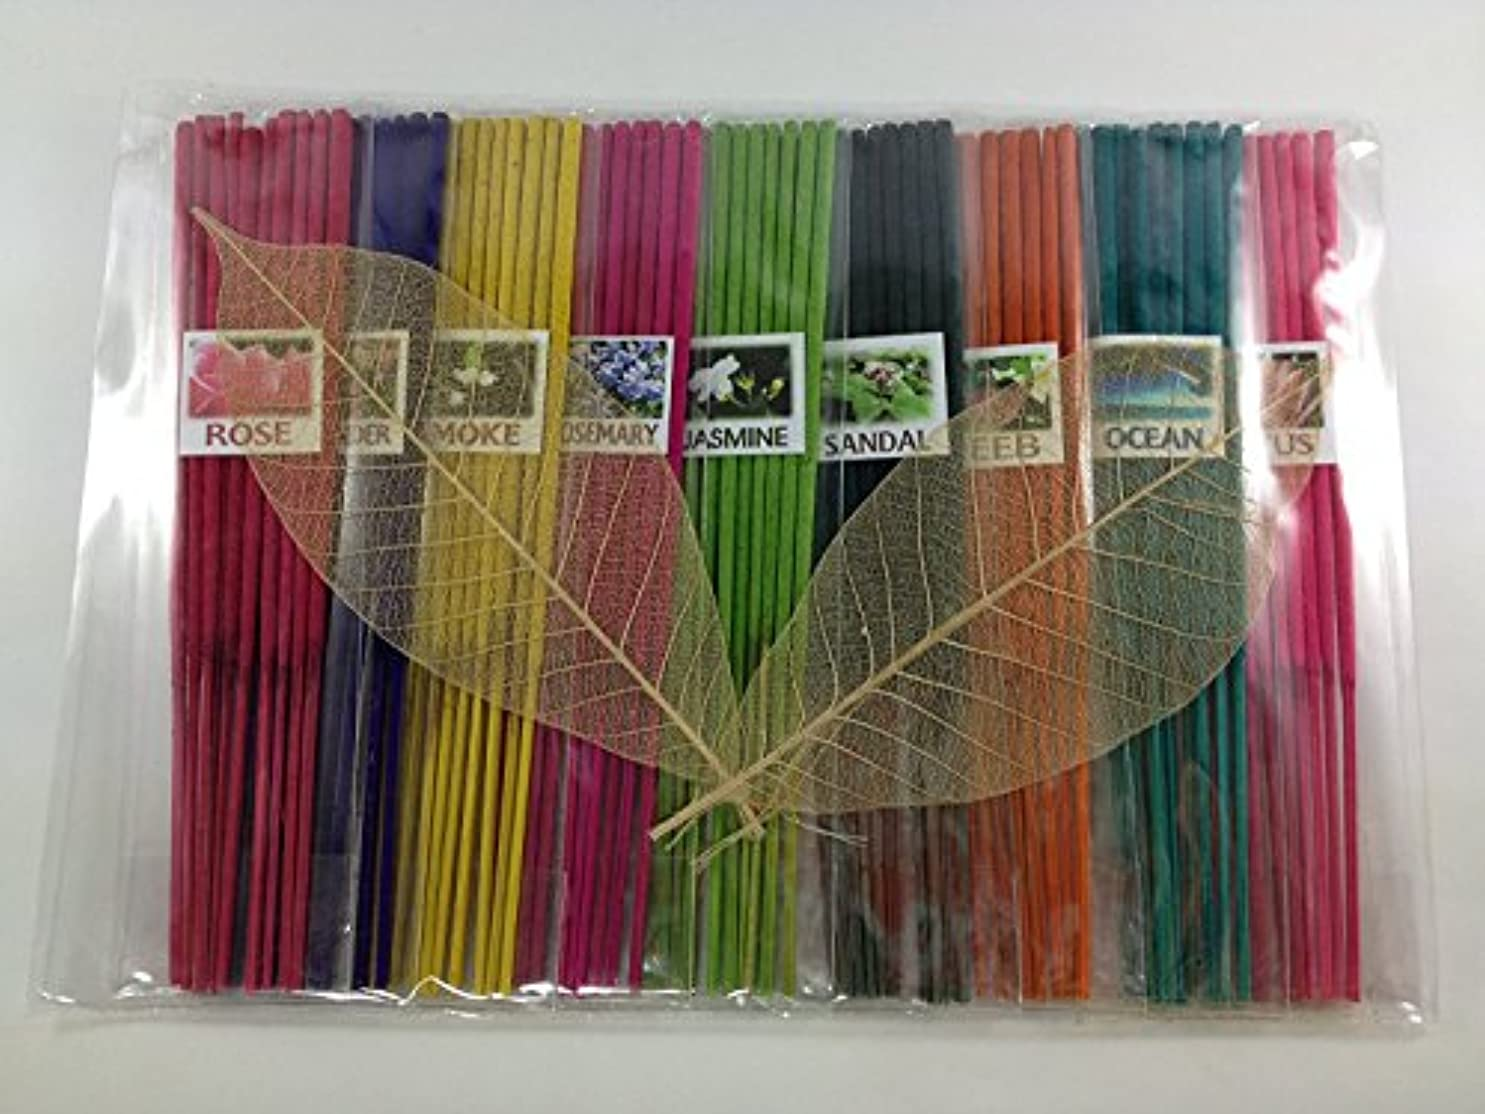 評価可能ドック器具Thai Incense Sticks with 9 Aroma Smell - Moke Rosemary Jasmine Sandal Lotus Ocean Rose Lavender Peeb.